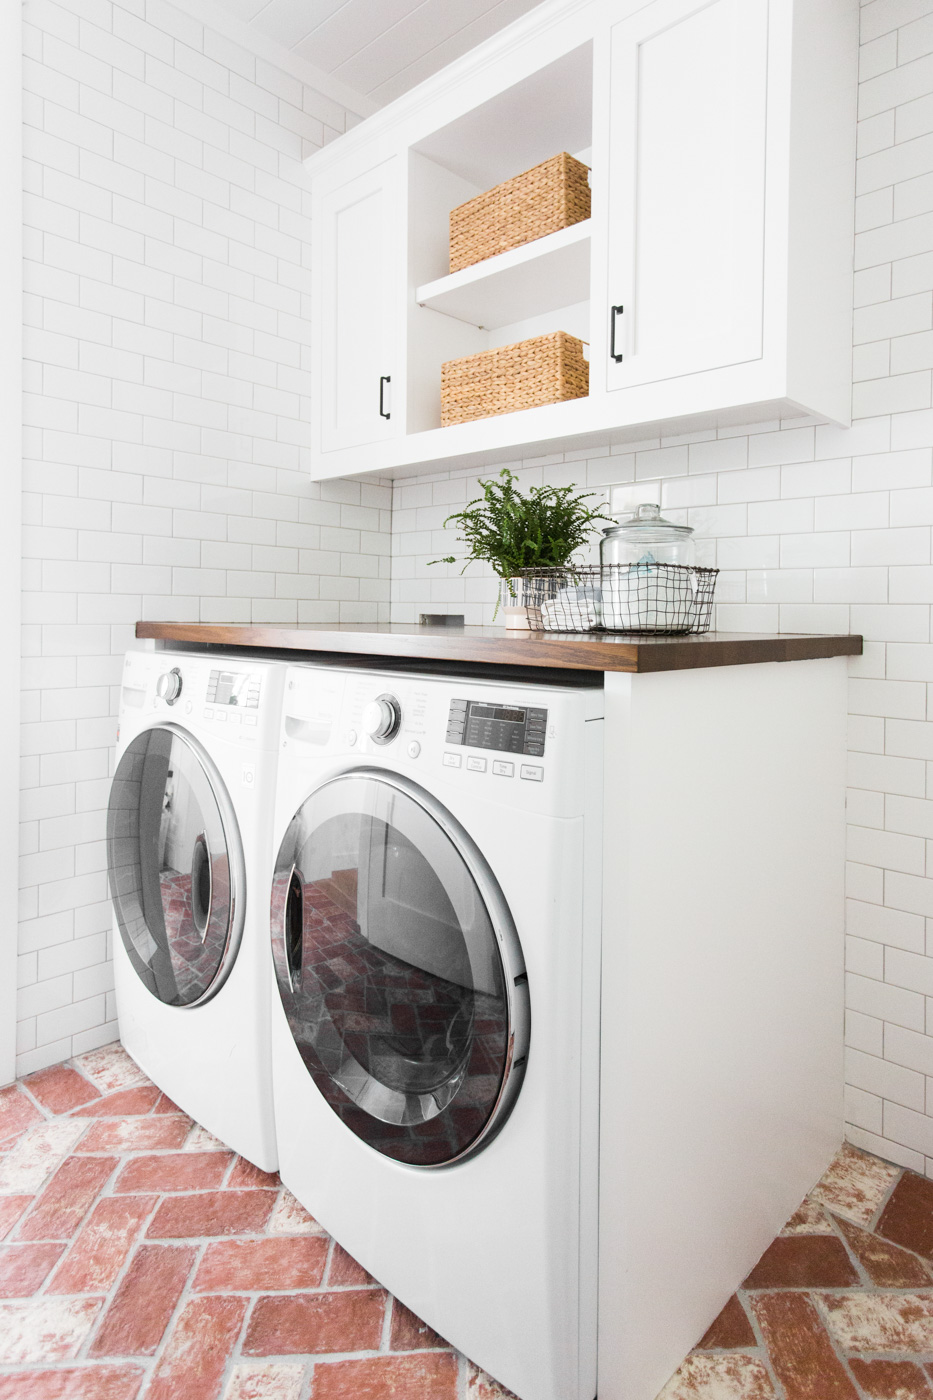 Brick Floor Laundry Room : Amazing laundry rooms classy clutter